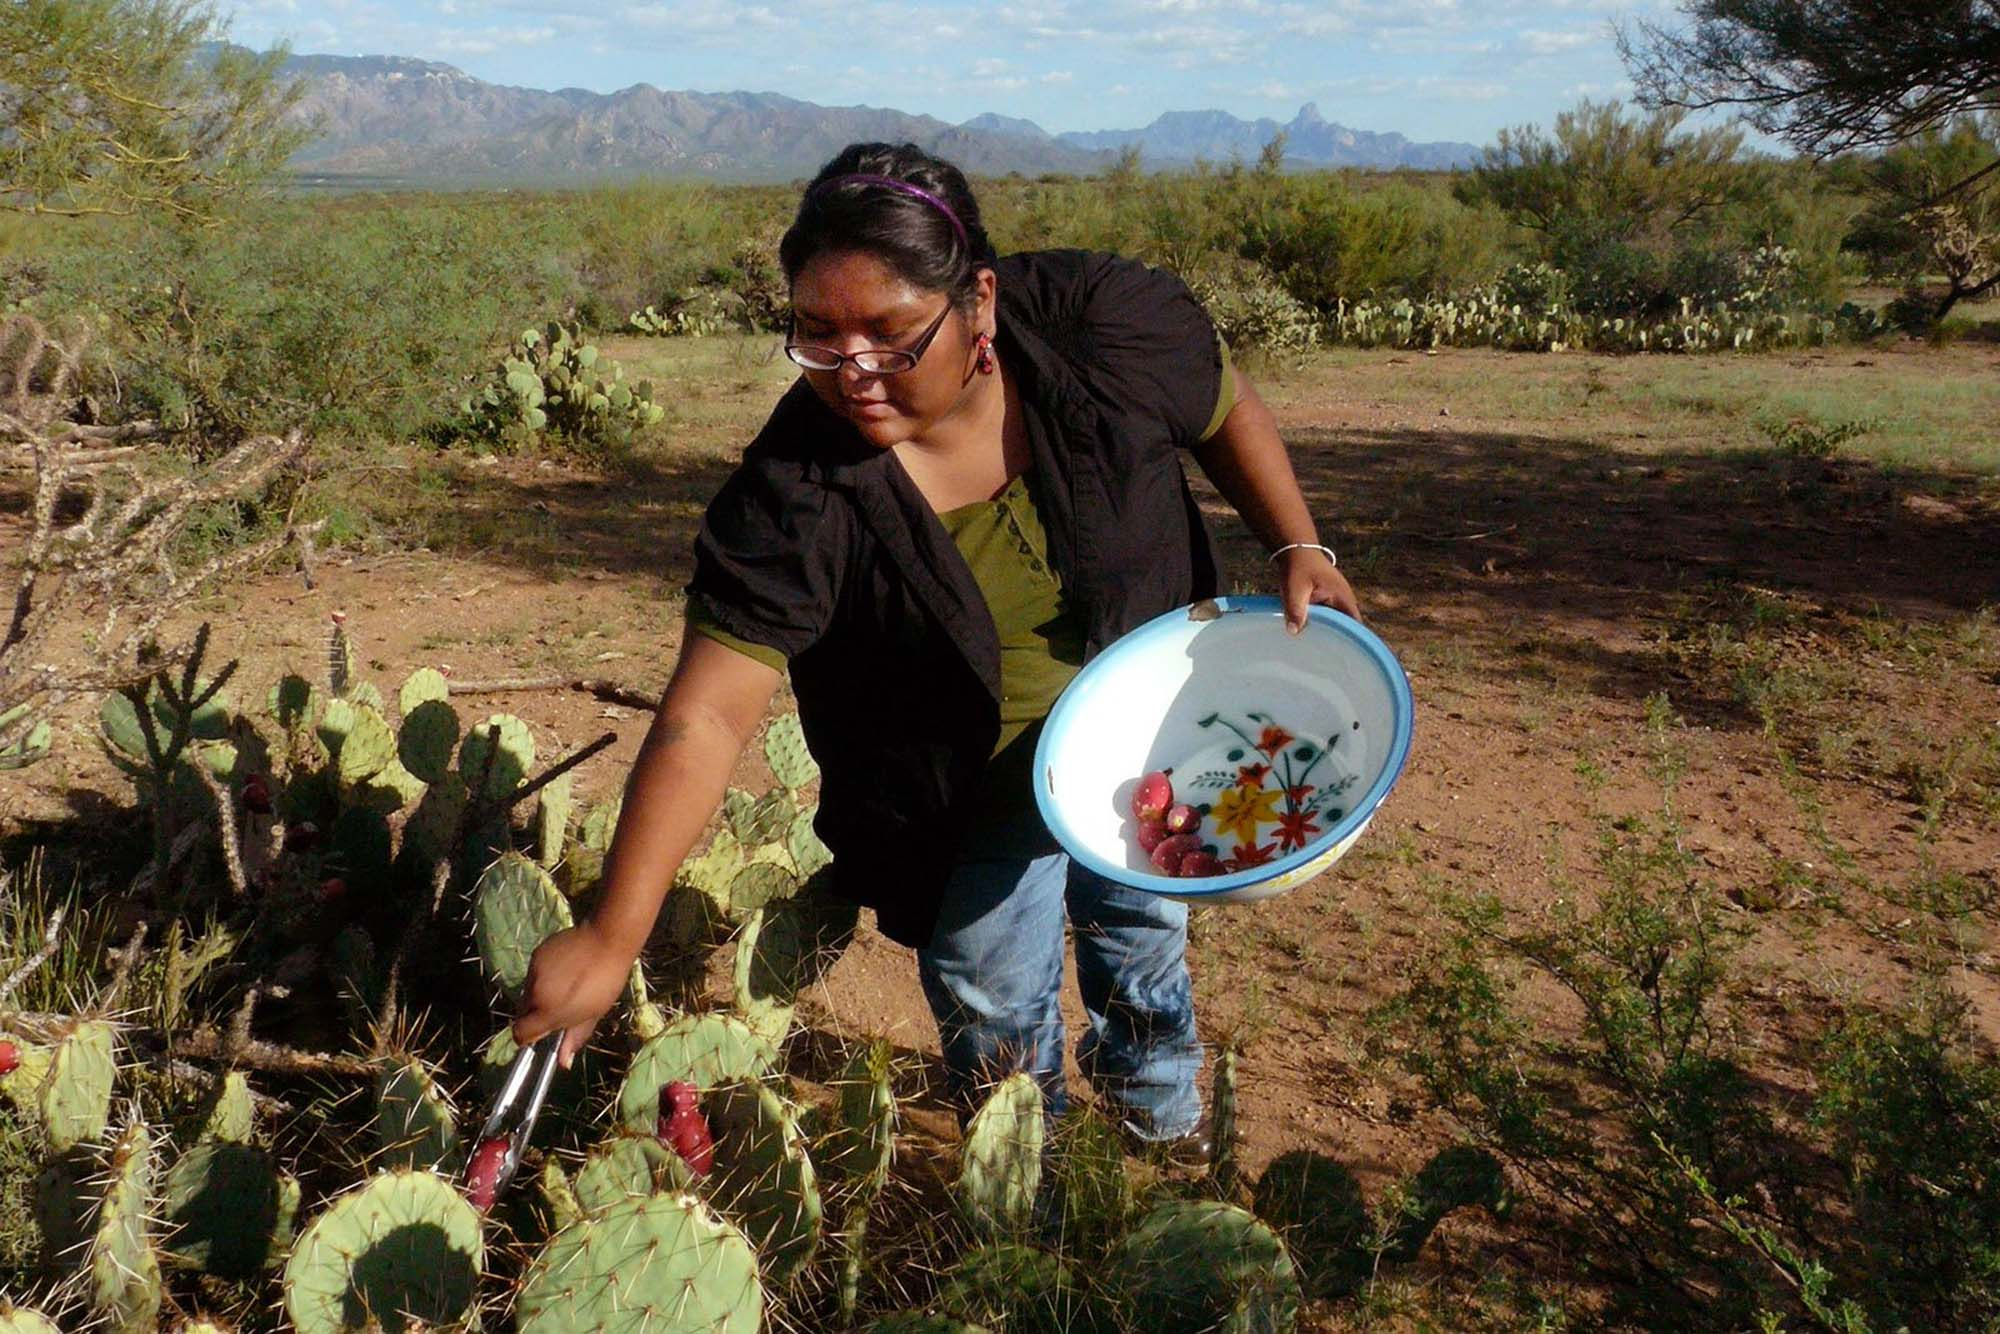 person harvesting prickly pears